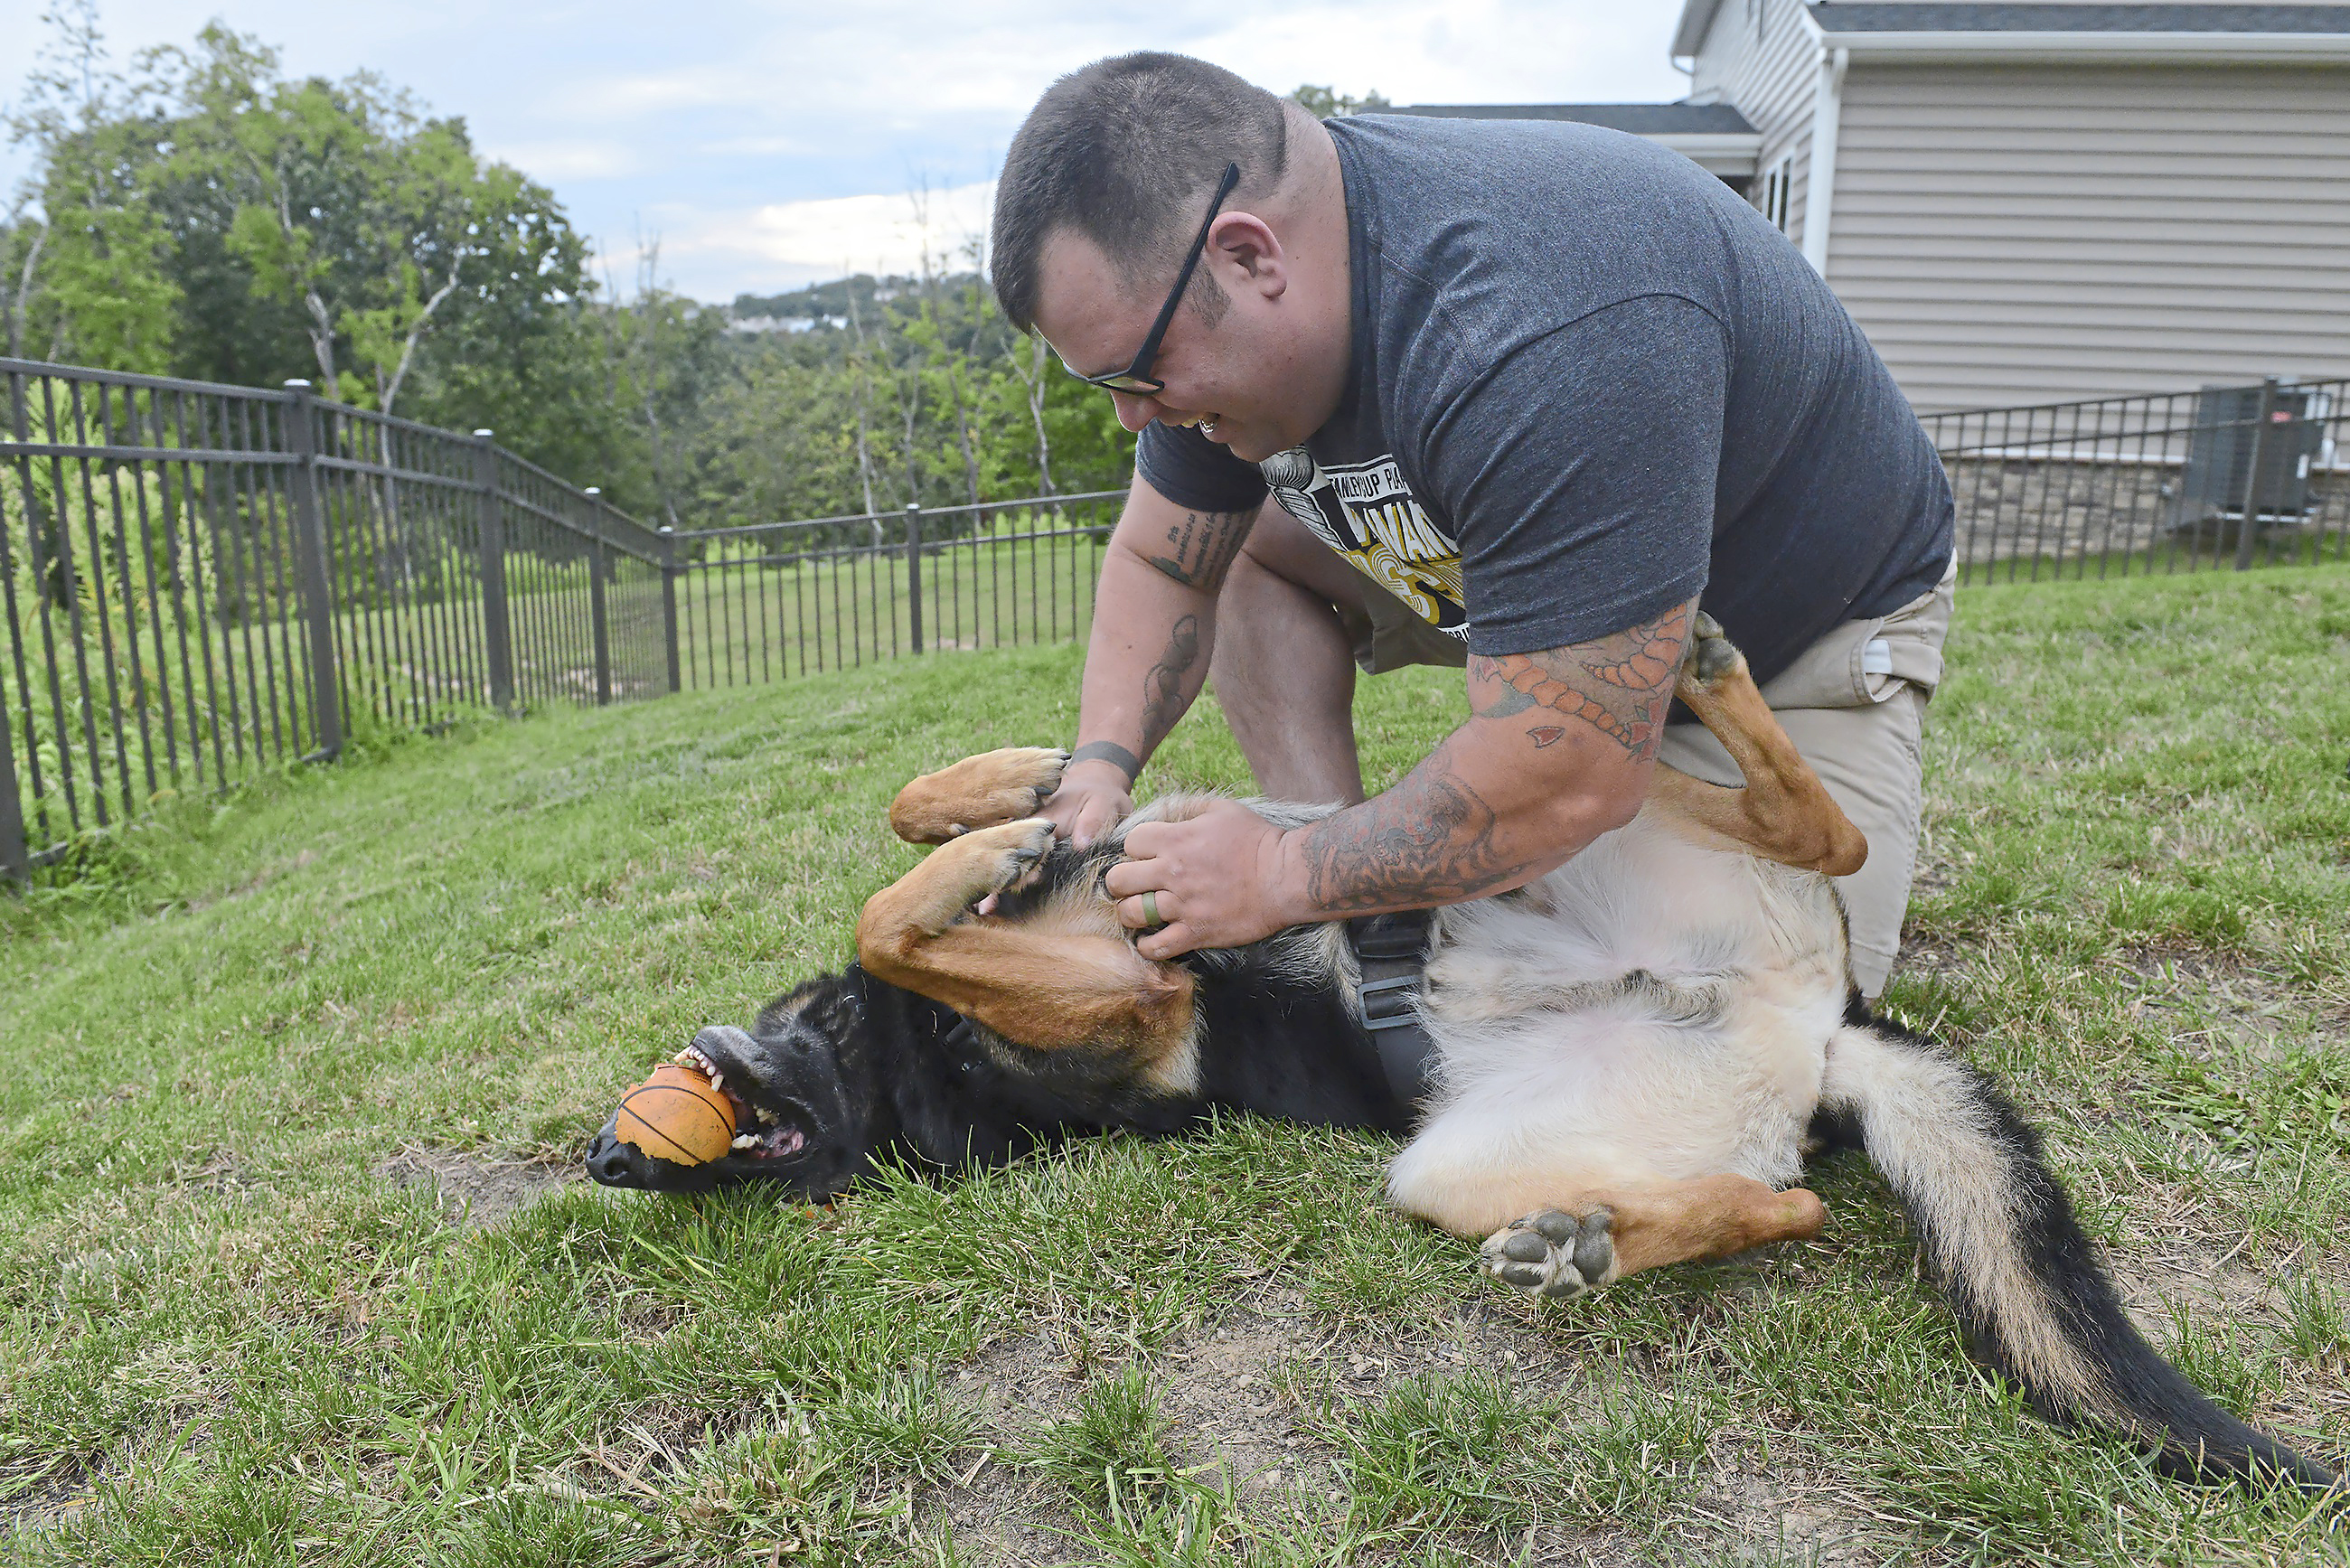 20170901rldRanger02-1 Retired Army Capt. John Kelly plays with his service dog, Ranger, at home in Jefferson Hills. He was partnered with Ranger via Guardian Angels Medical Service Dogs in Williston, Fla.